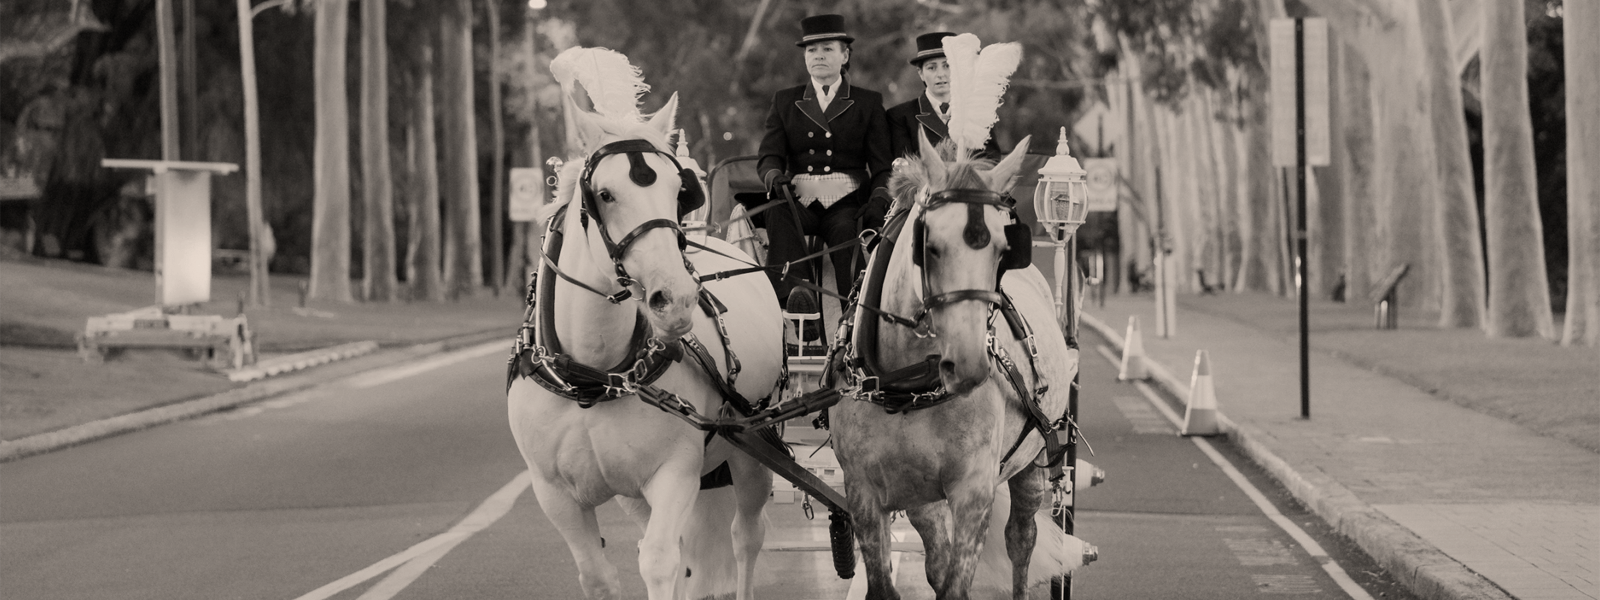 Perth-Horse-&-Carriage-Kingspark